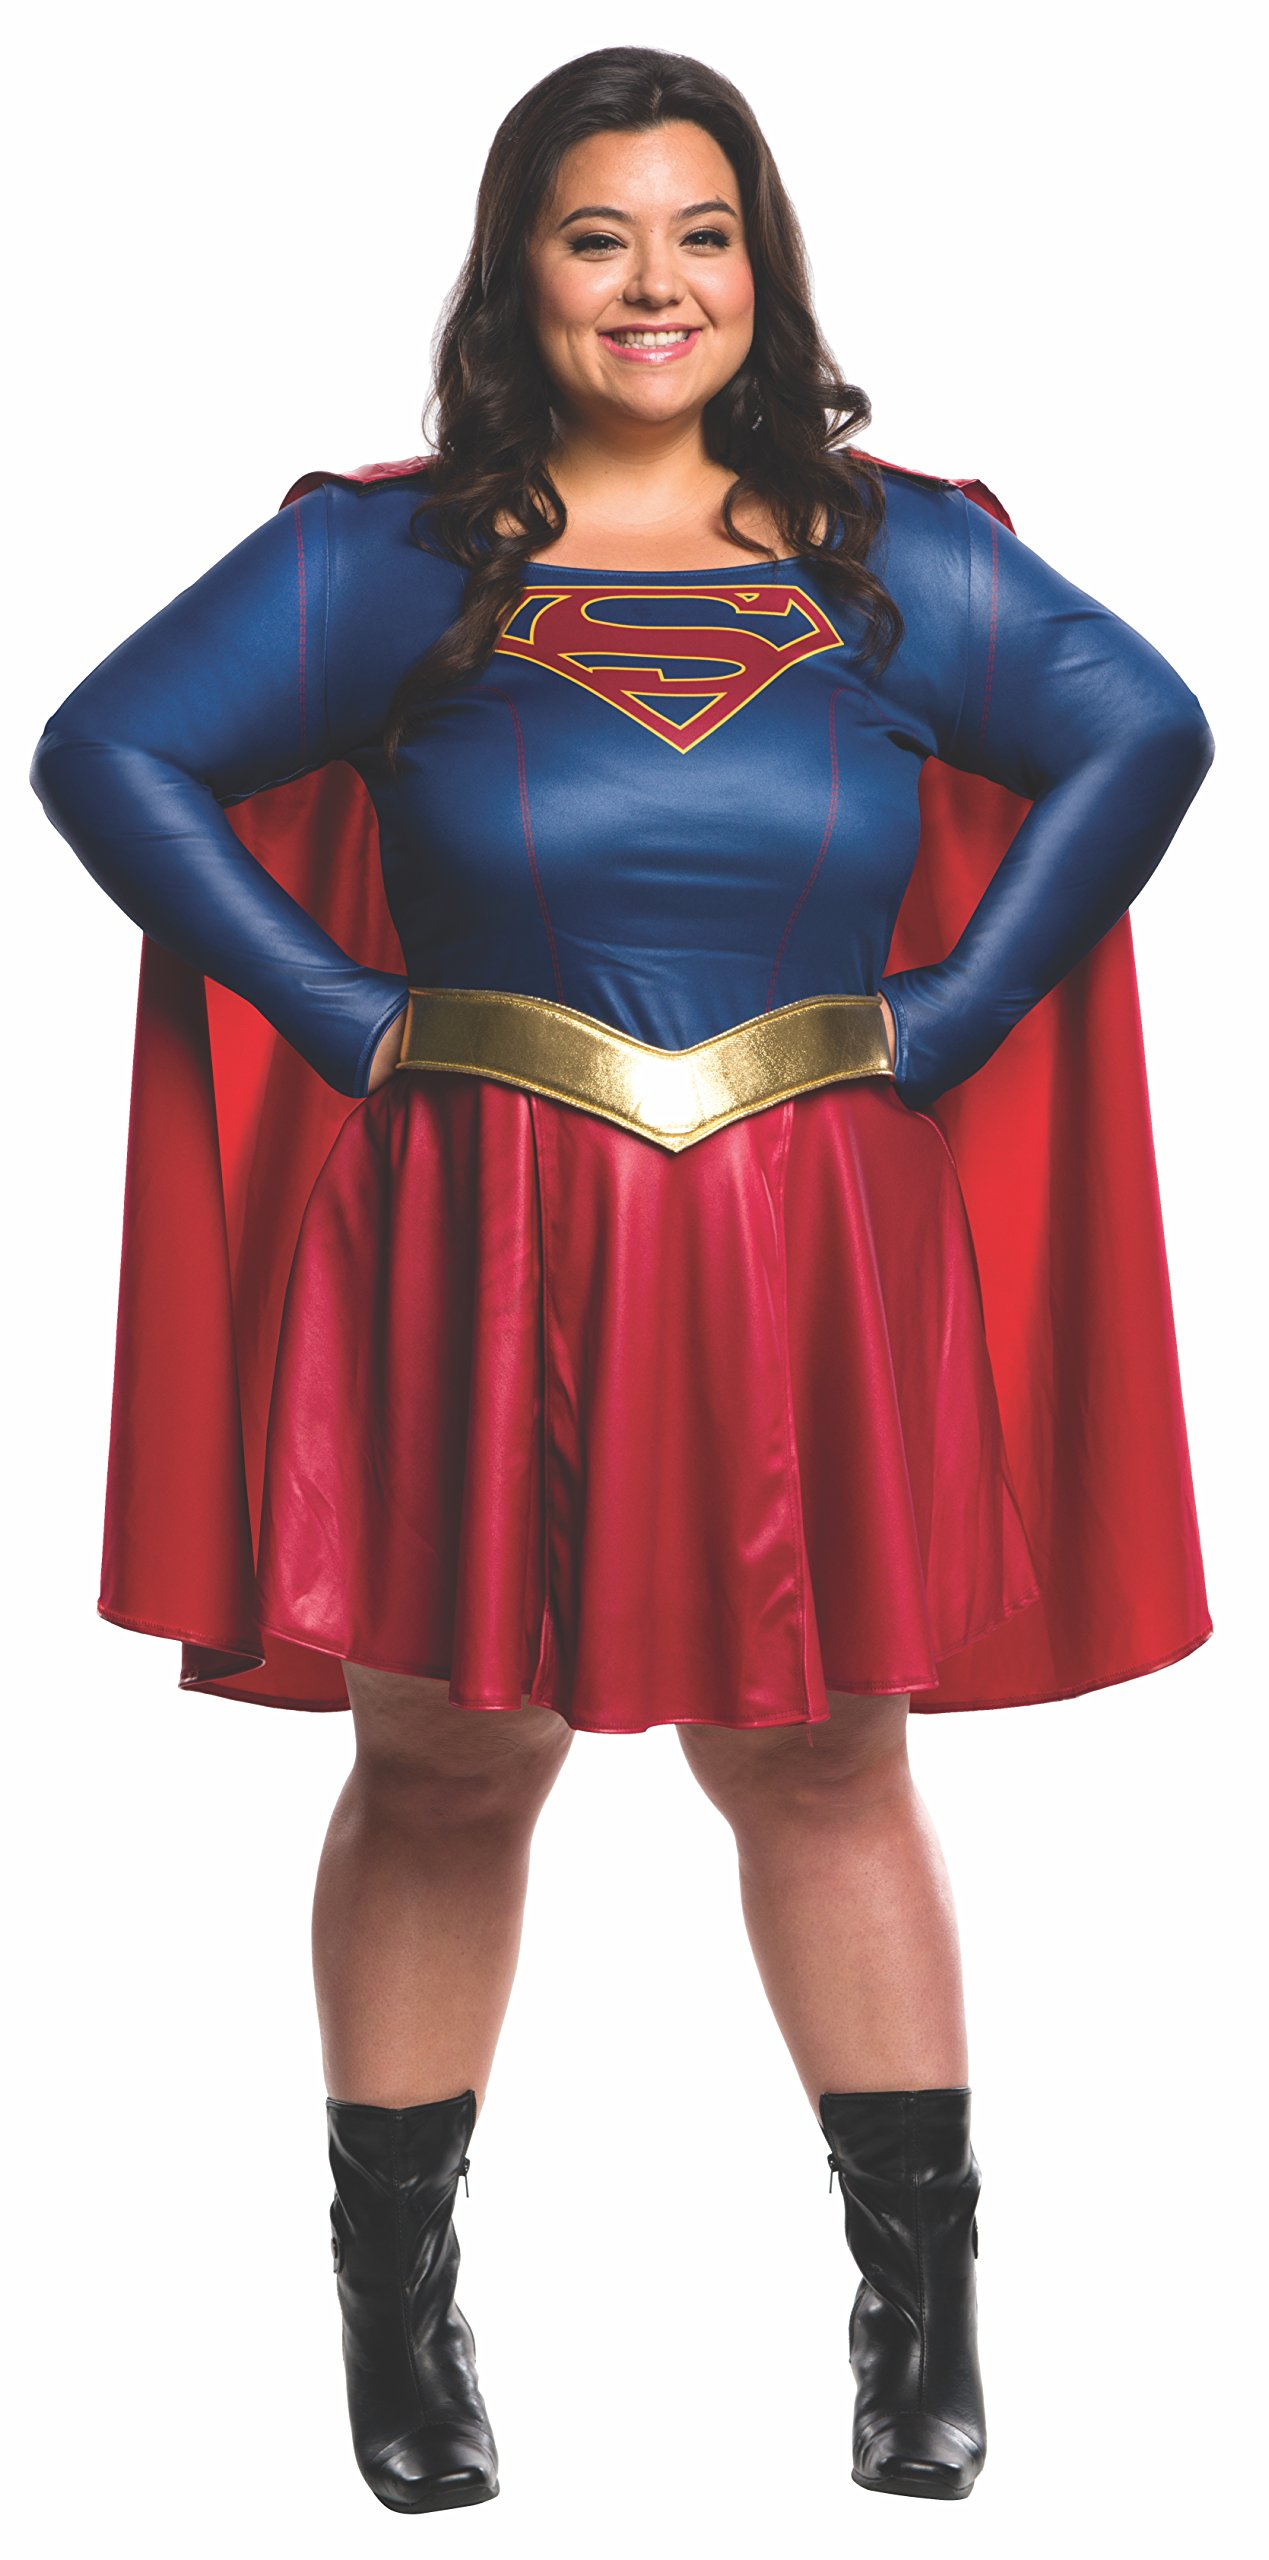 Rubie's Women's Supergirl TV Plus Size Costume, Multi